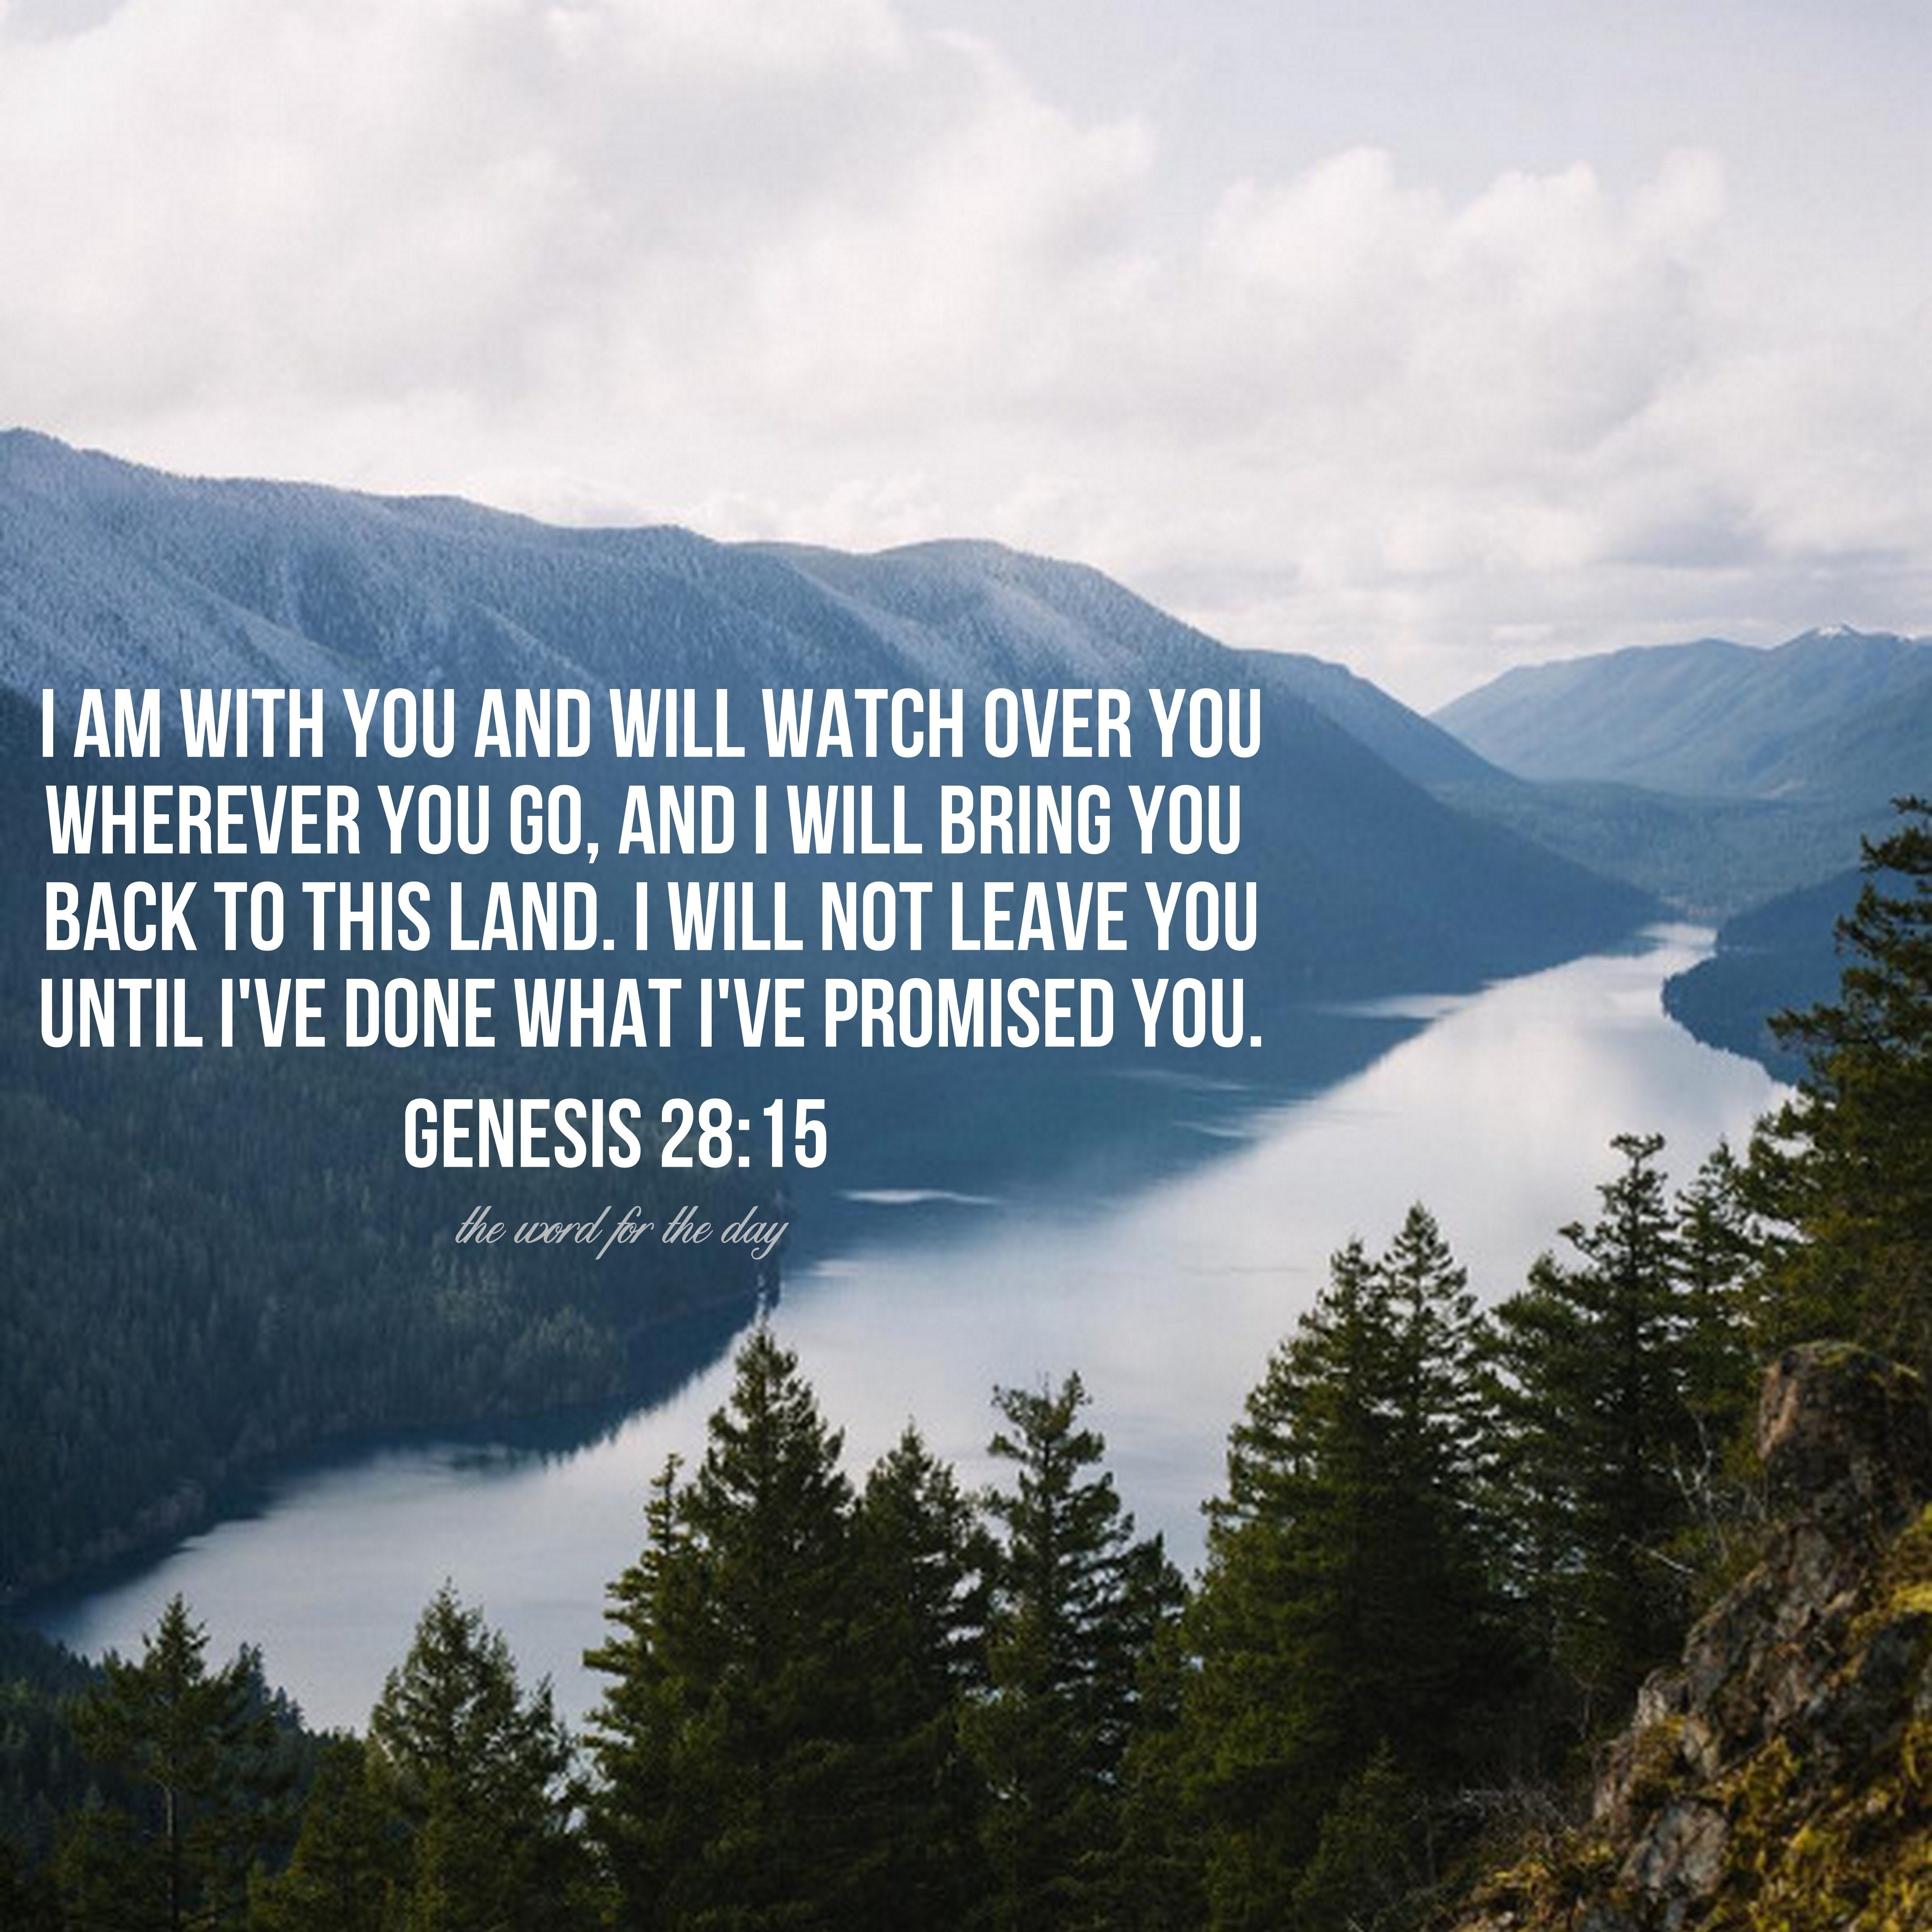 Bible Inspirational Quotes Of The Day: SCENERY, MOUNTAINS, BIBLE QUOTES, BIBLE VERSE, THE WORD